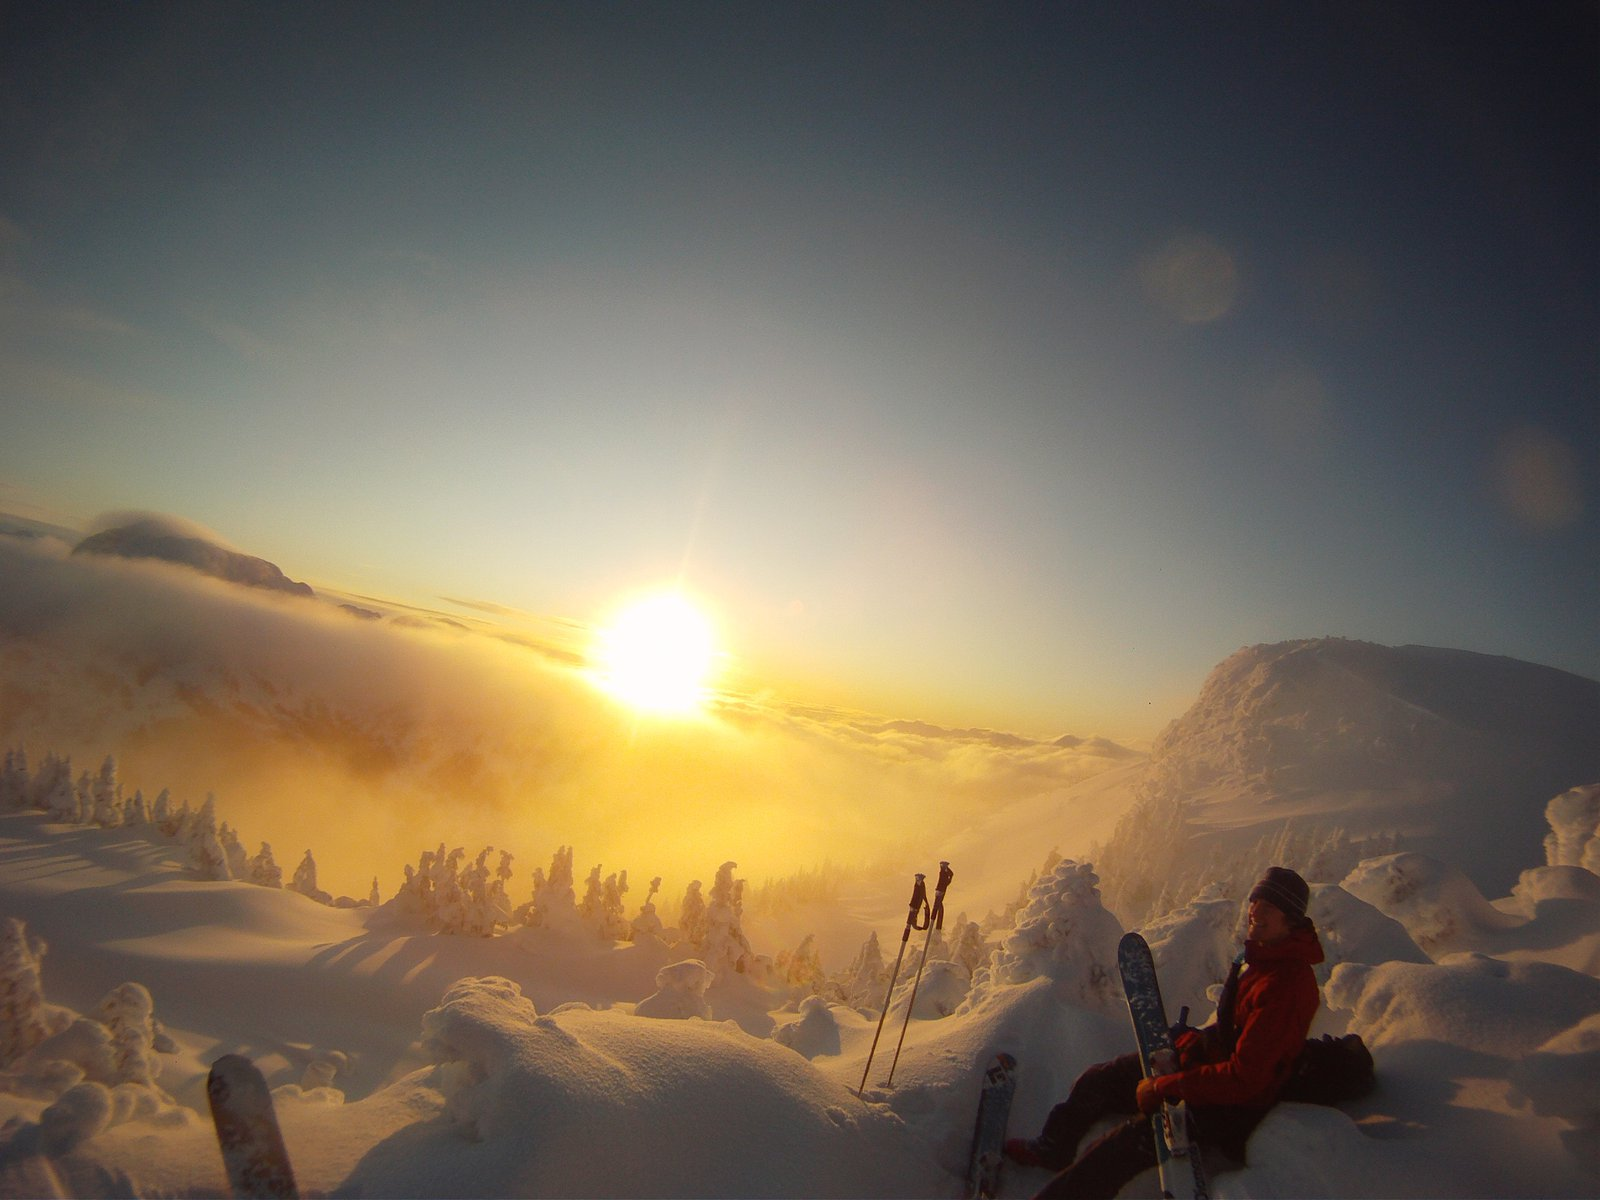 Sunrise on top of the mountain